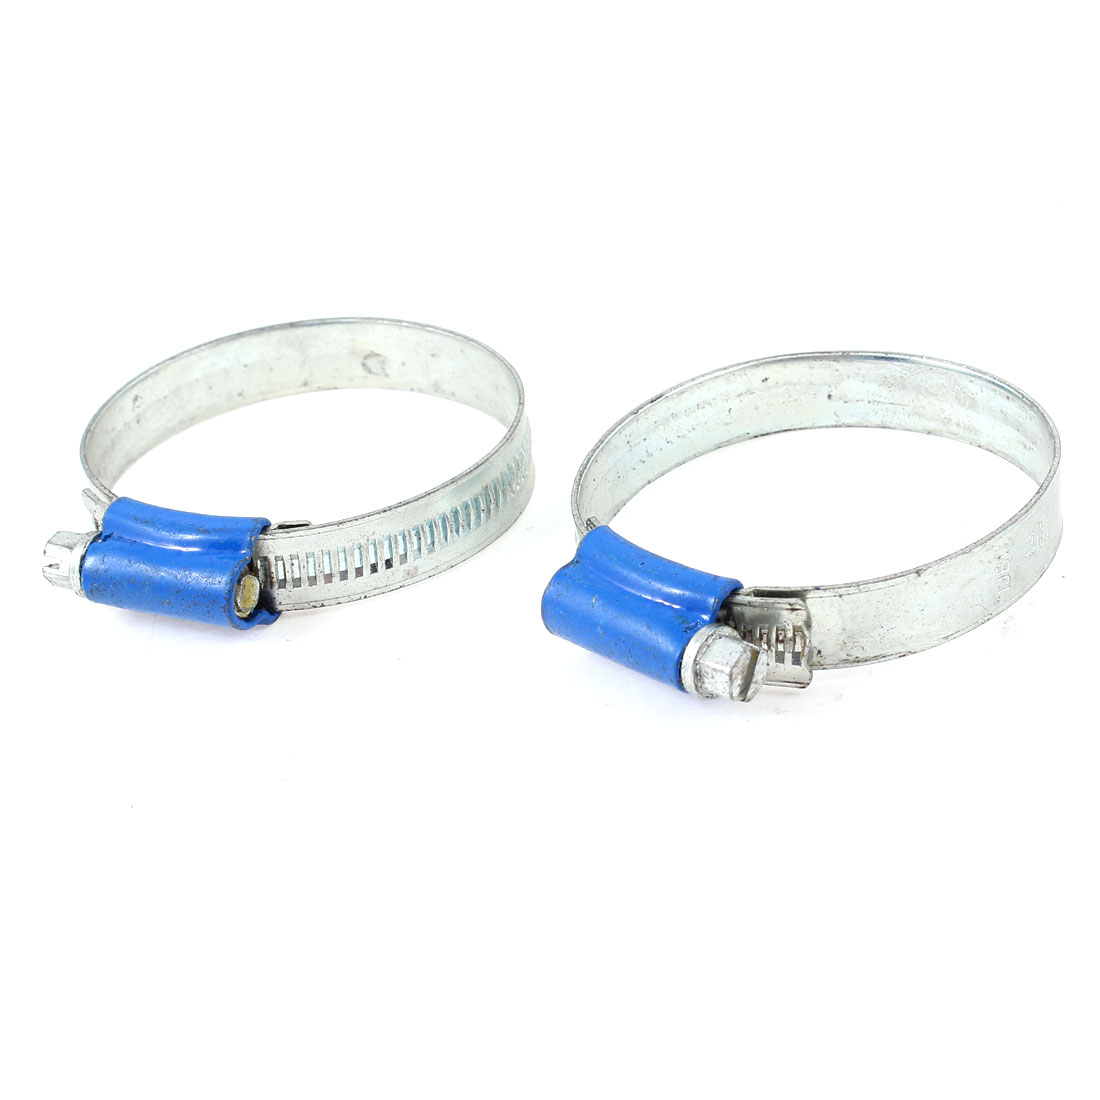 2 Pcs 44mm-56mm Adjustable Worm Drive Hose Clamp Clips